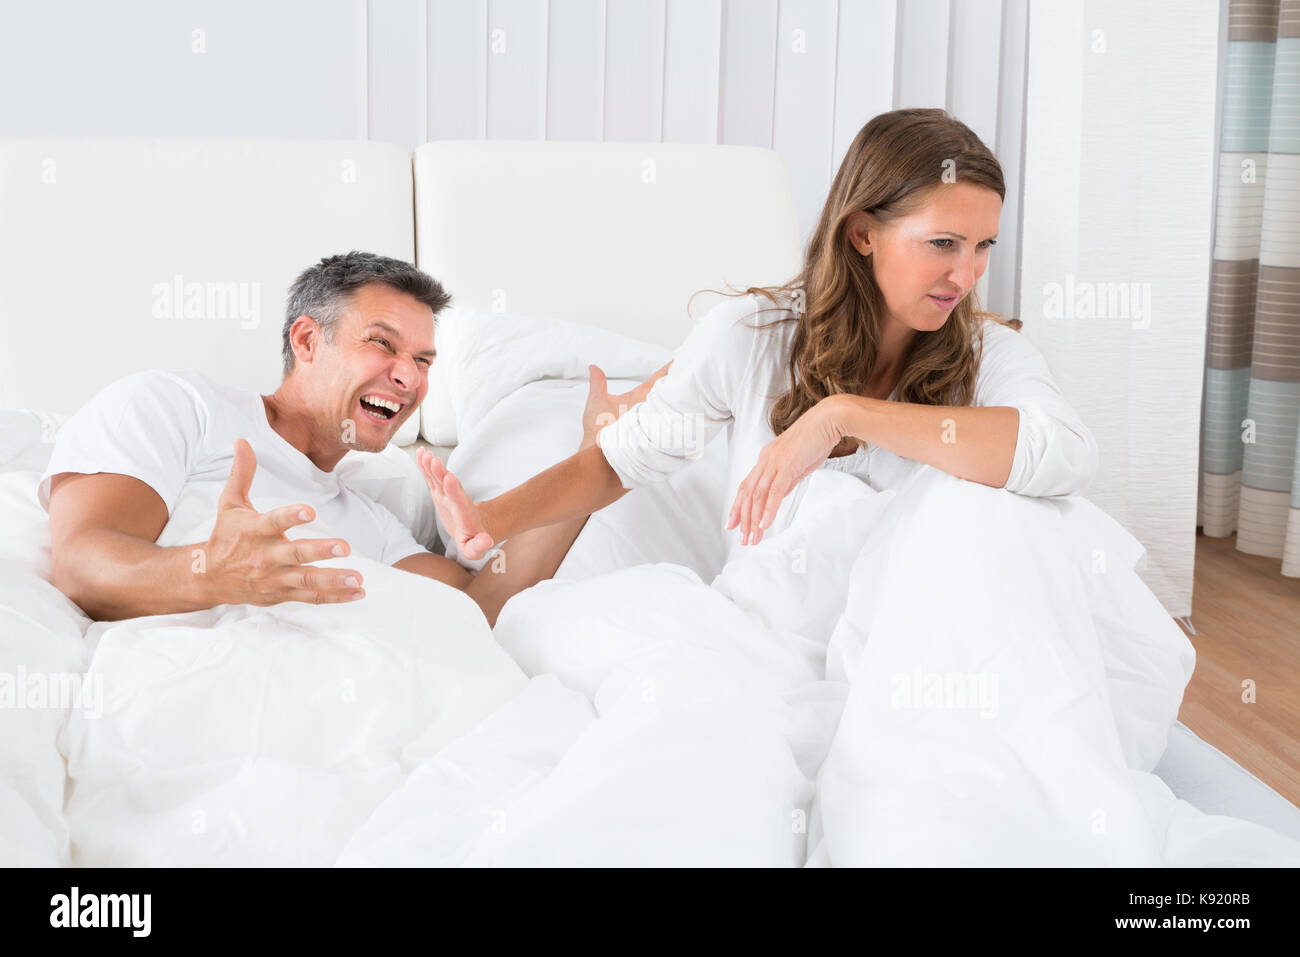 Portrait Of Unhappy Couple Disputing On Bed - Stock Image